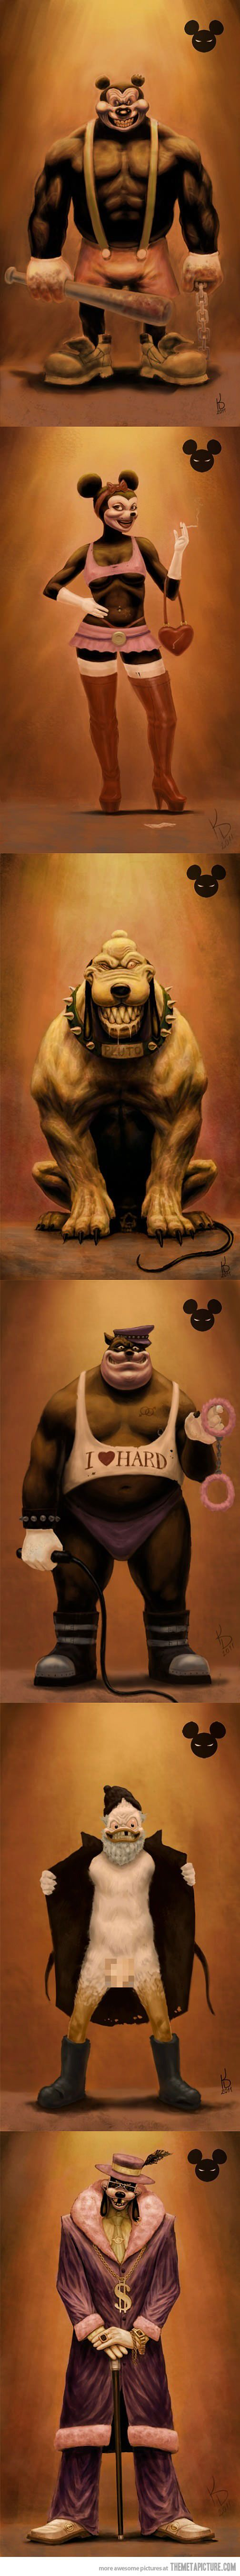 Disney main characters turn Evil. Pluto is great